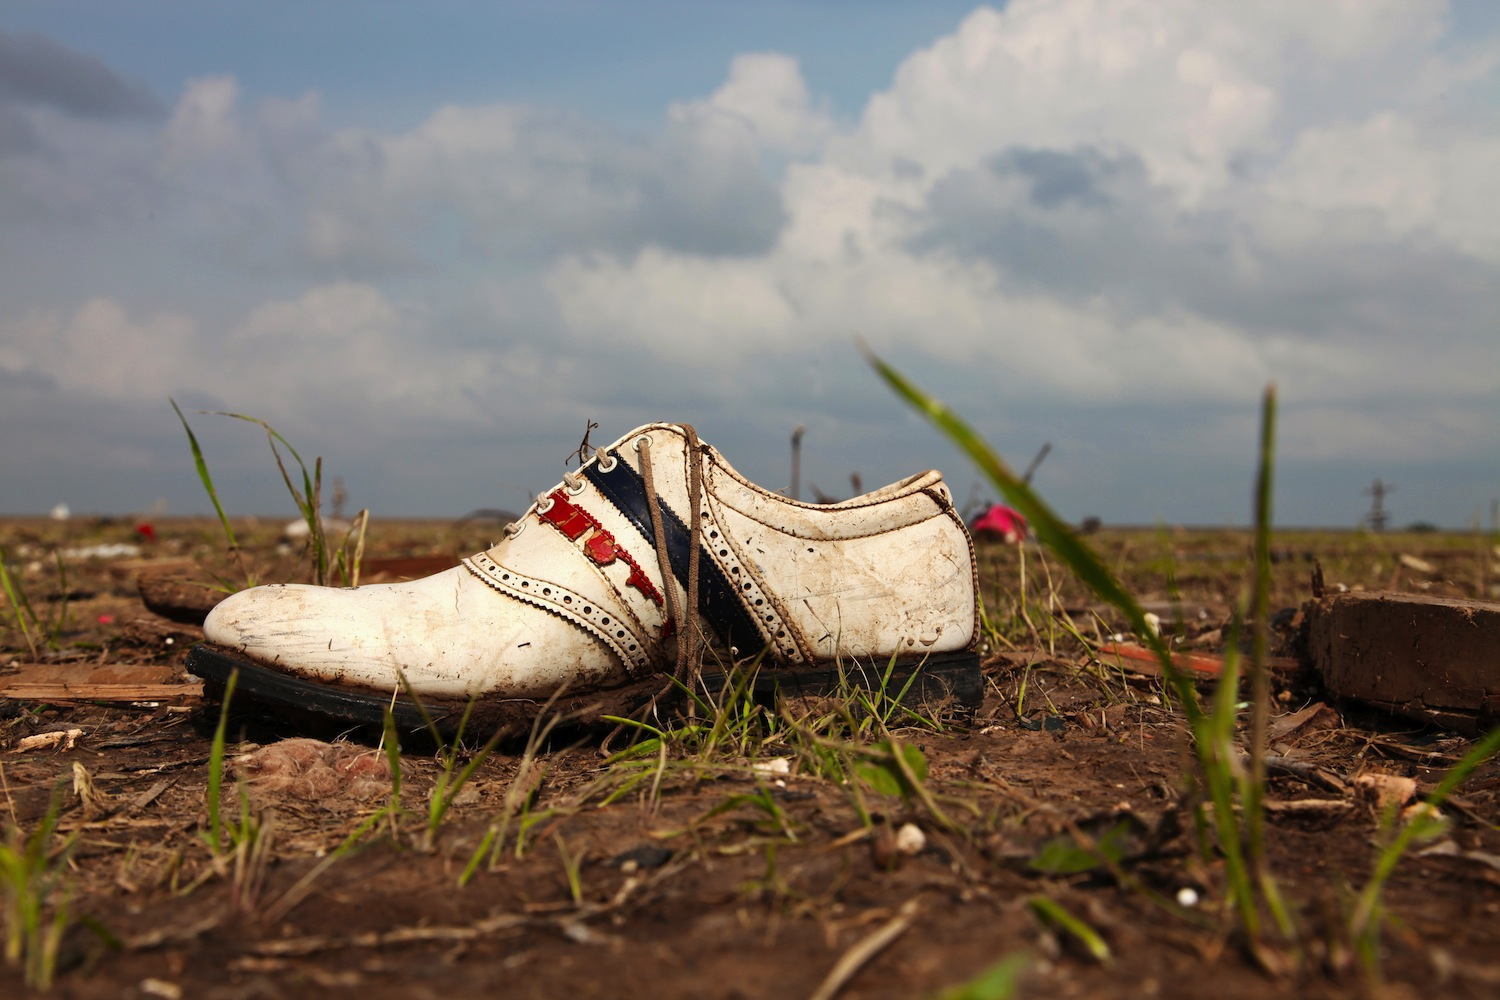 In Moore, the twister destroyed the local bowling alley -- and deposited this shoe in a field about 300 yards away.